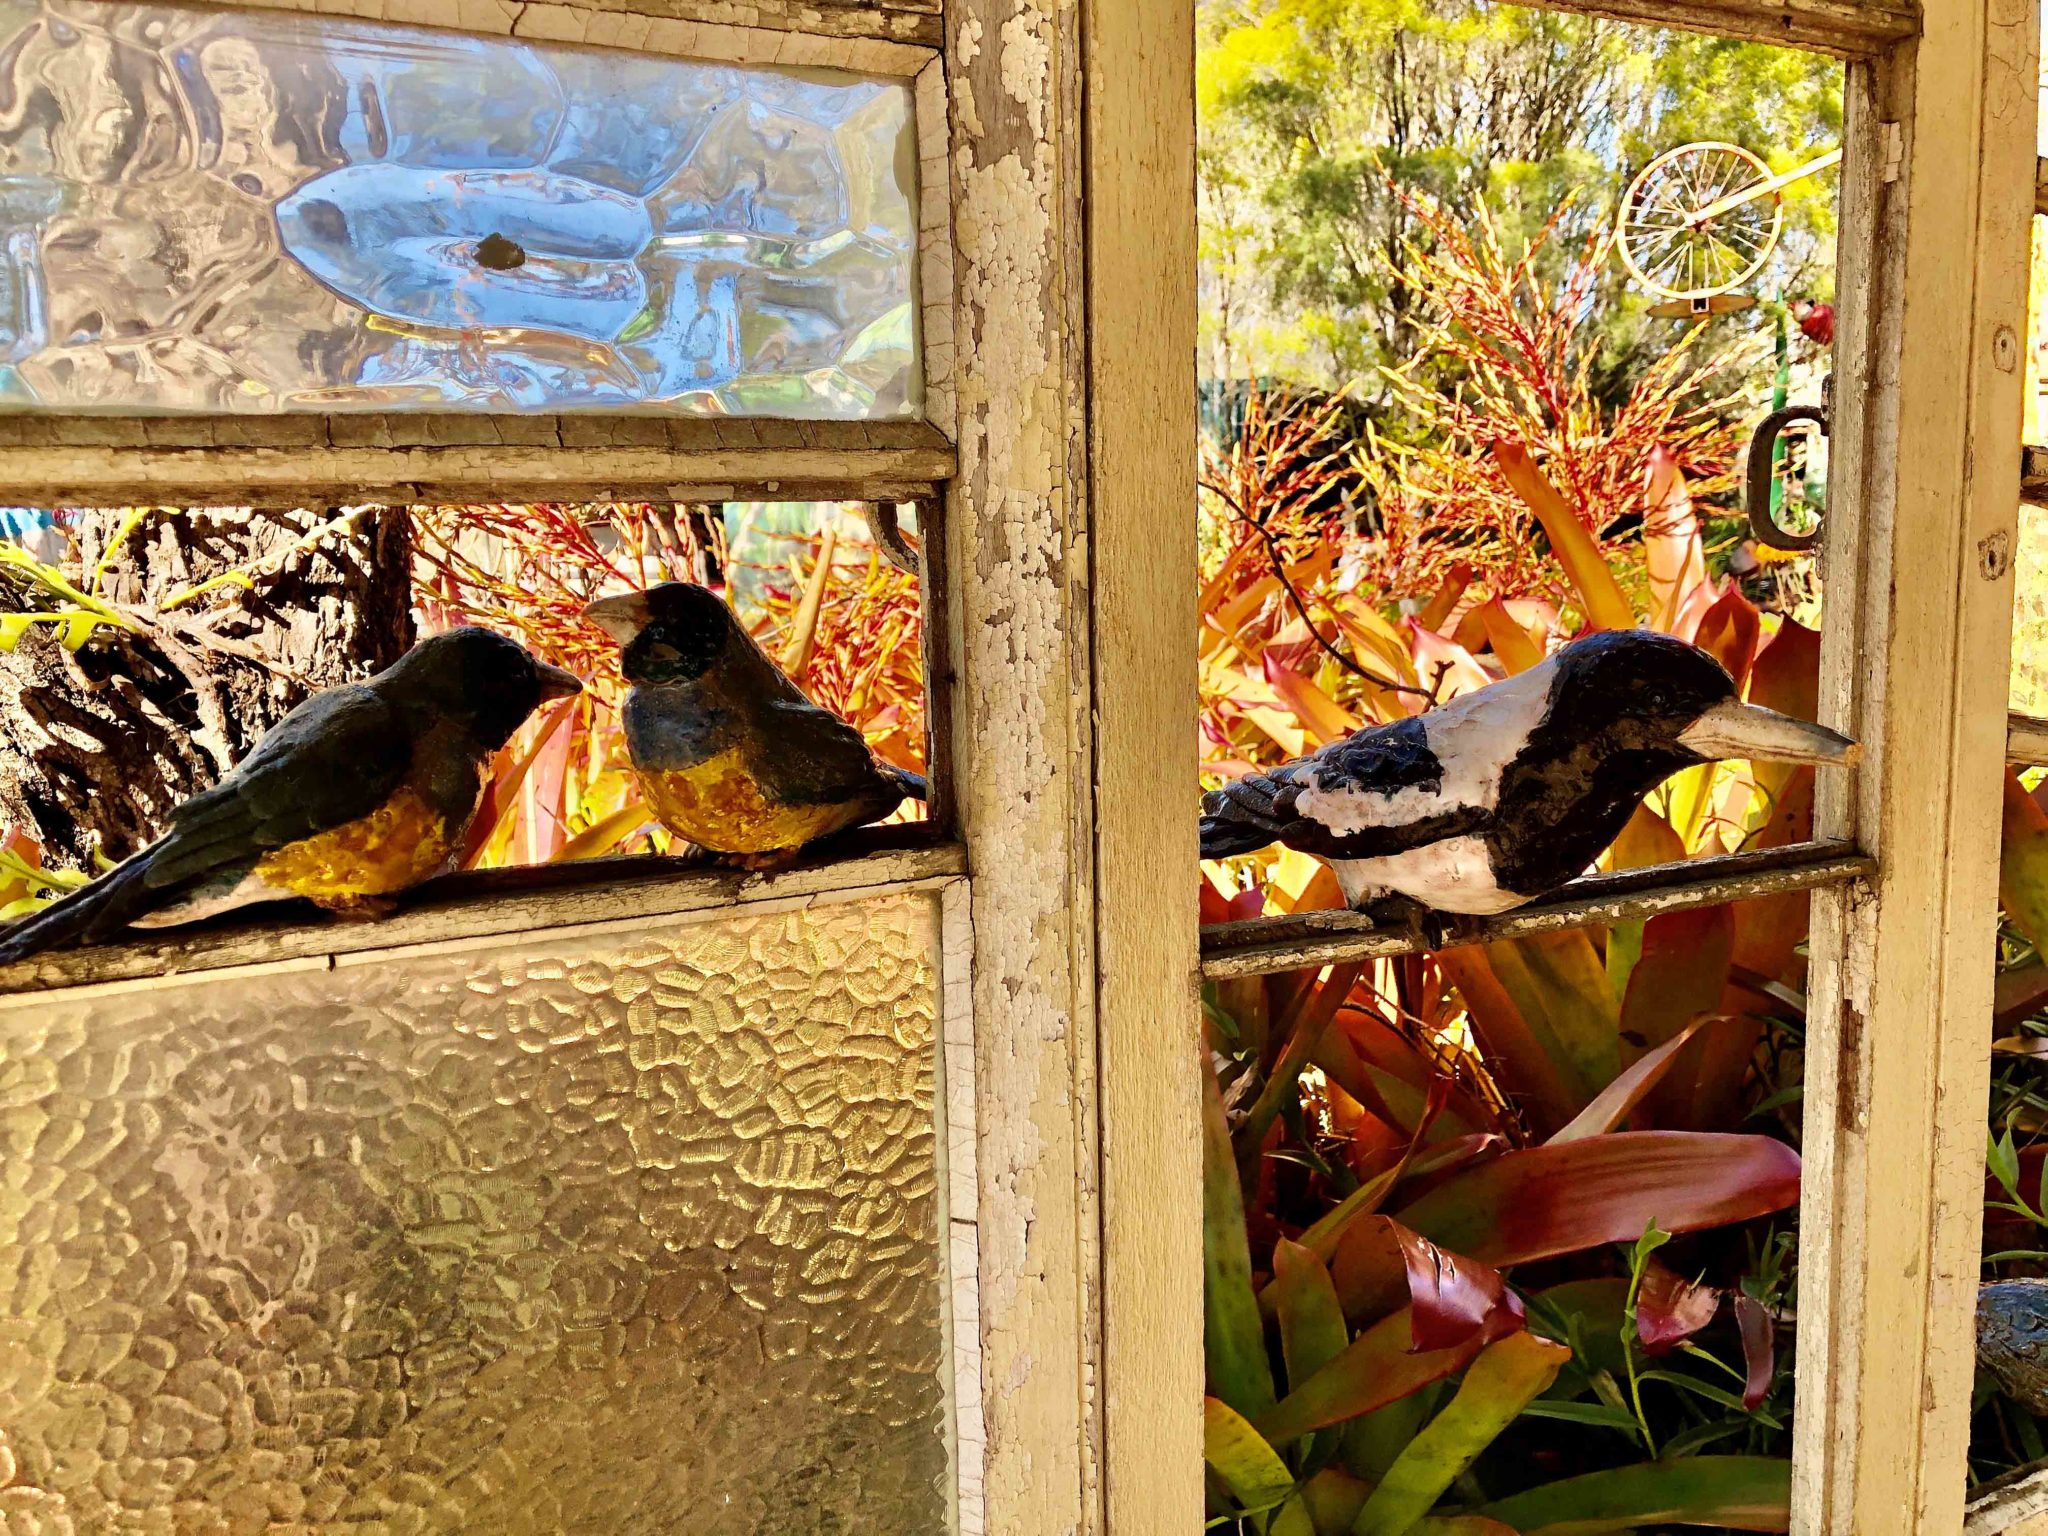 Ceramic birds make a lifelike scene as they perch on a window opening into Alice McLaughlin's gardens.